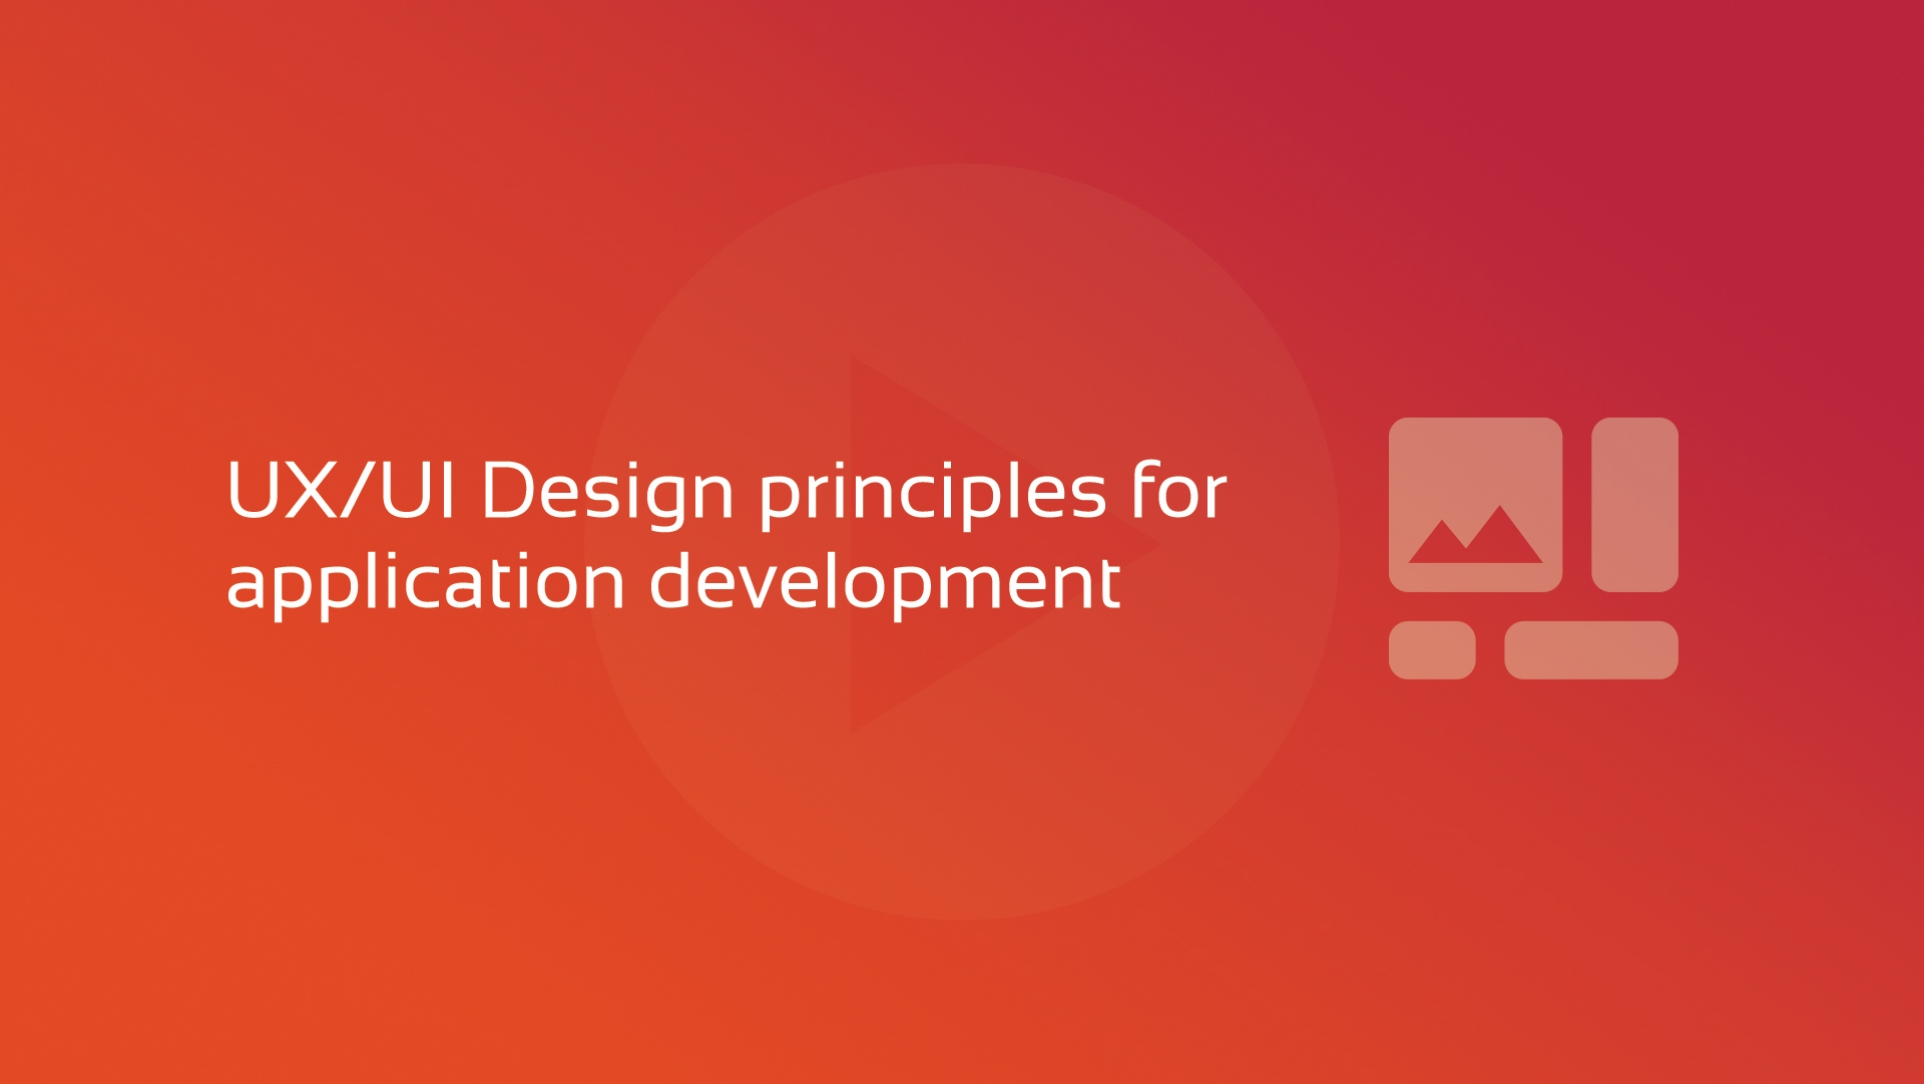 2019-10-04 DFLC UX UI Design principles for application development